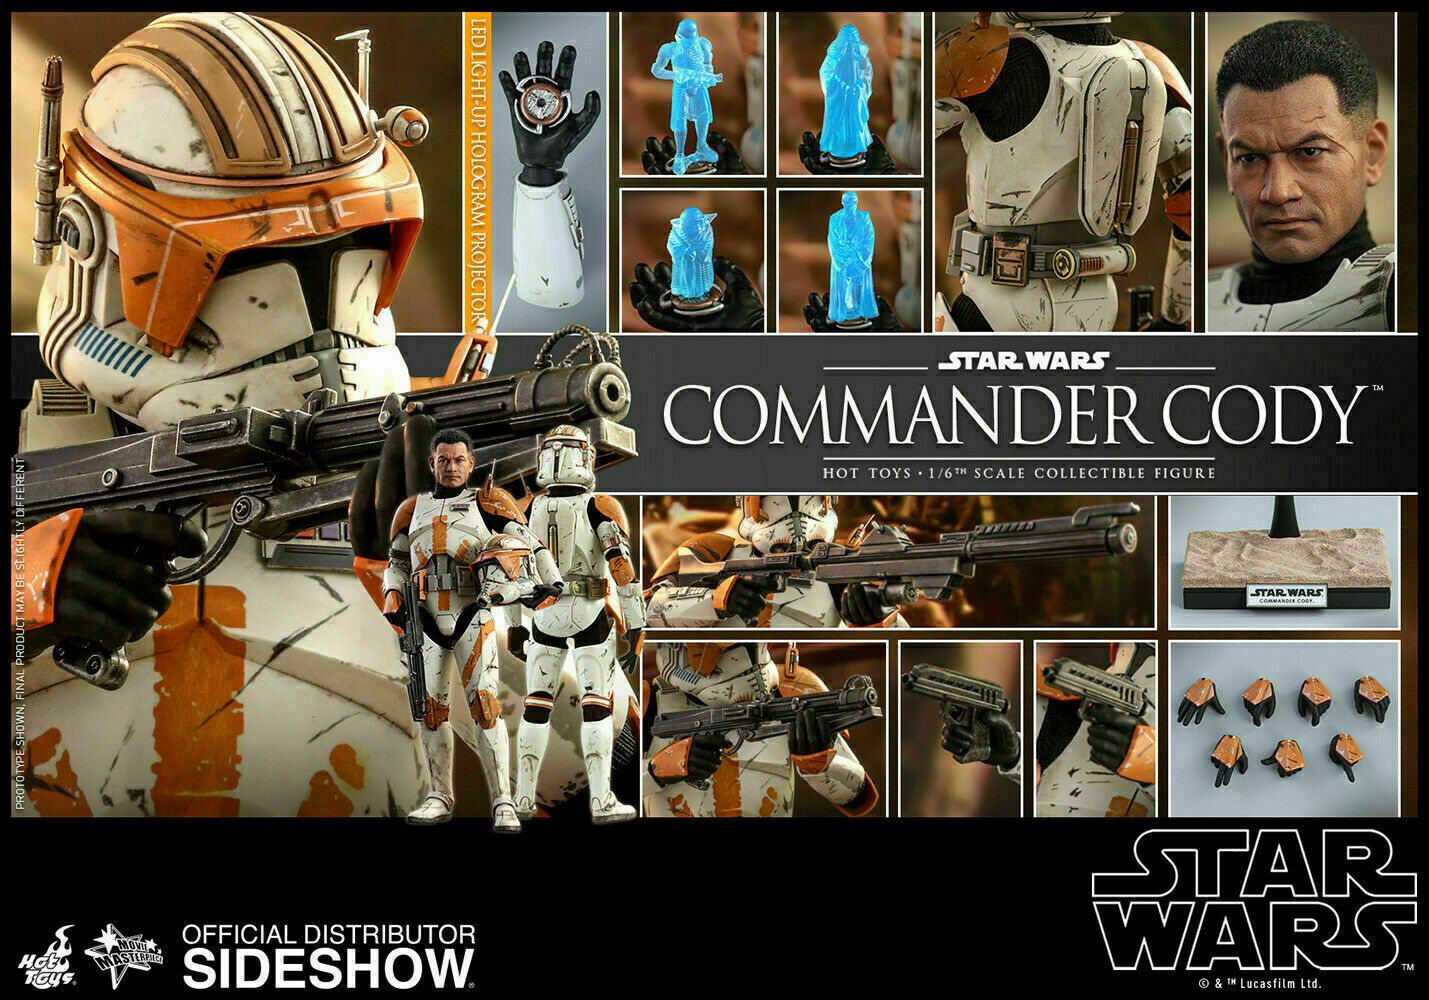 Hot Toys Star Wars Commander Cody 1/6 Scale Figure Revenge Of The Sith Clone on eBay thumbnail